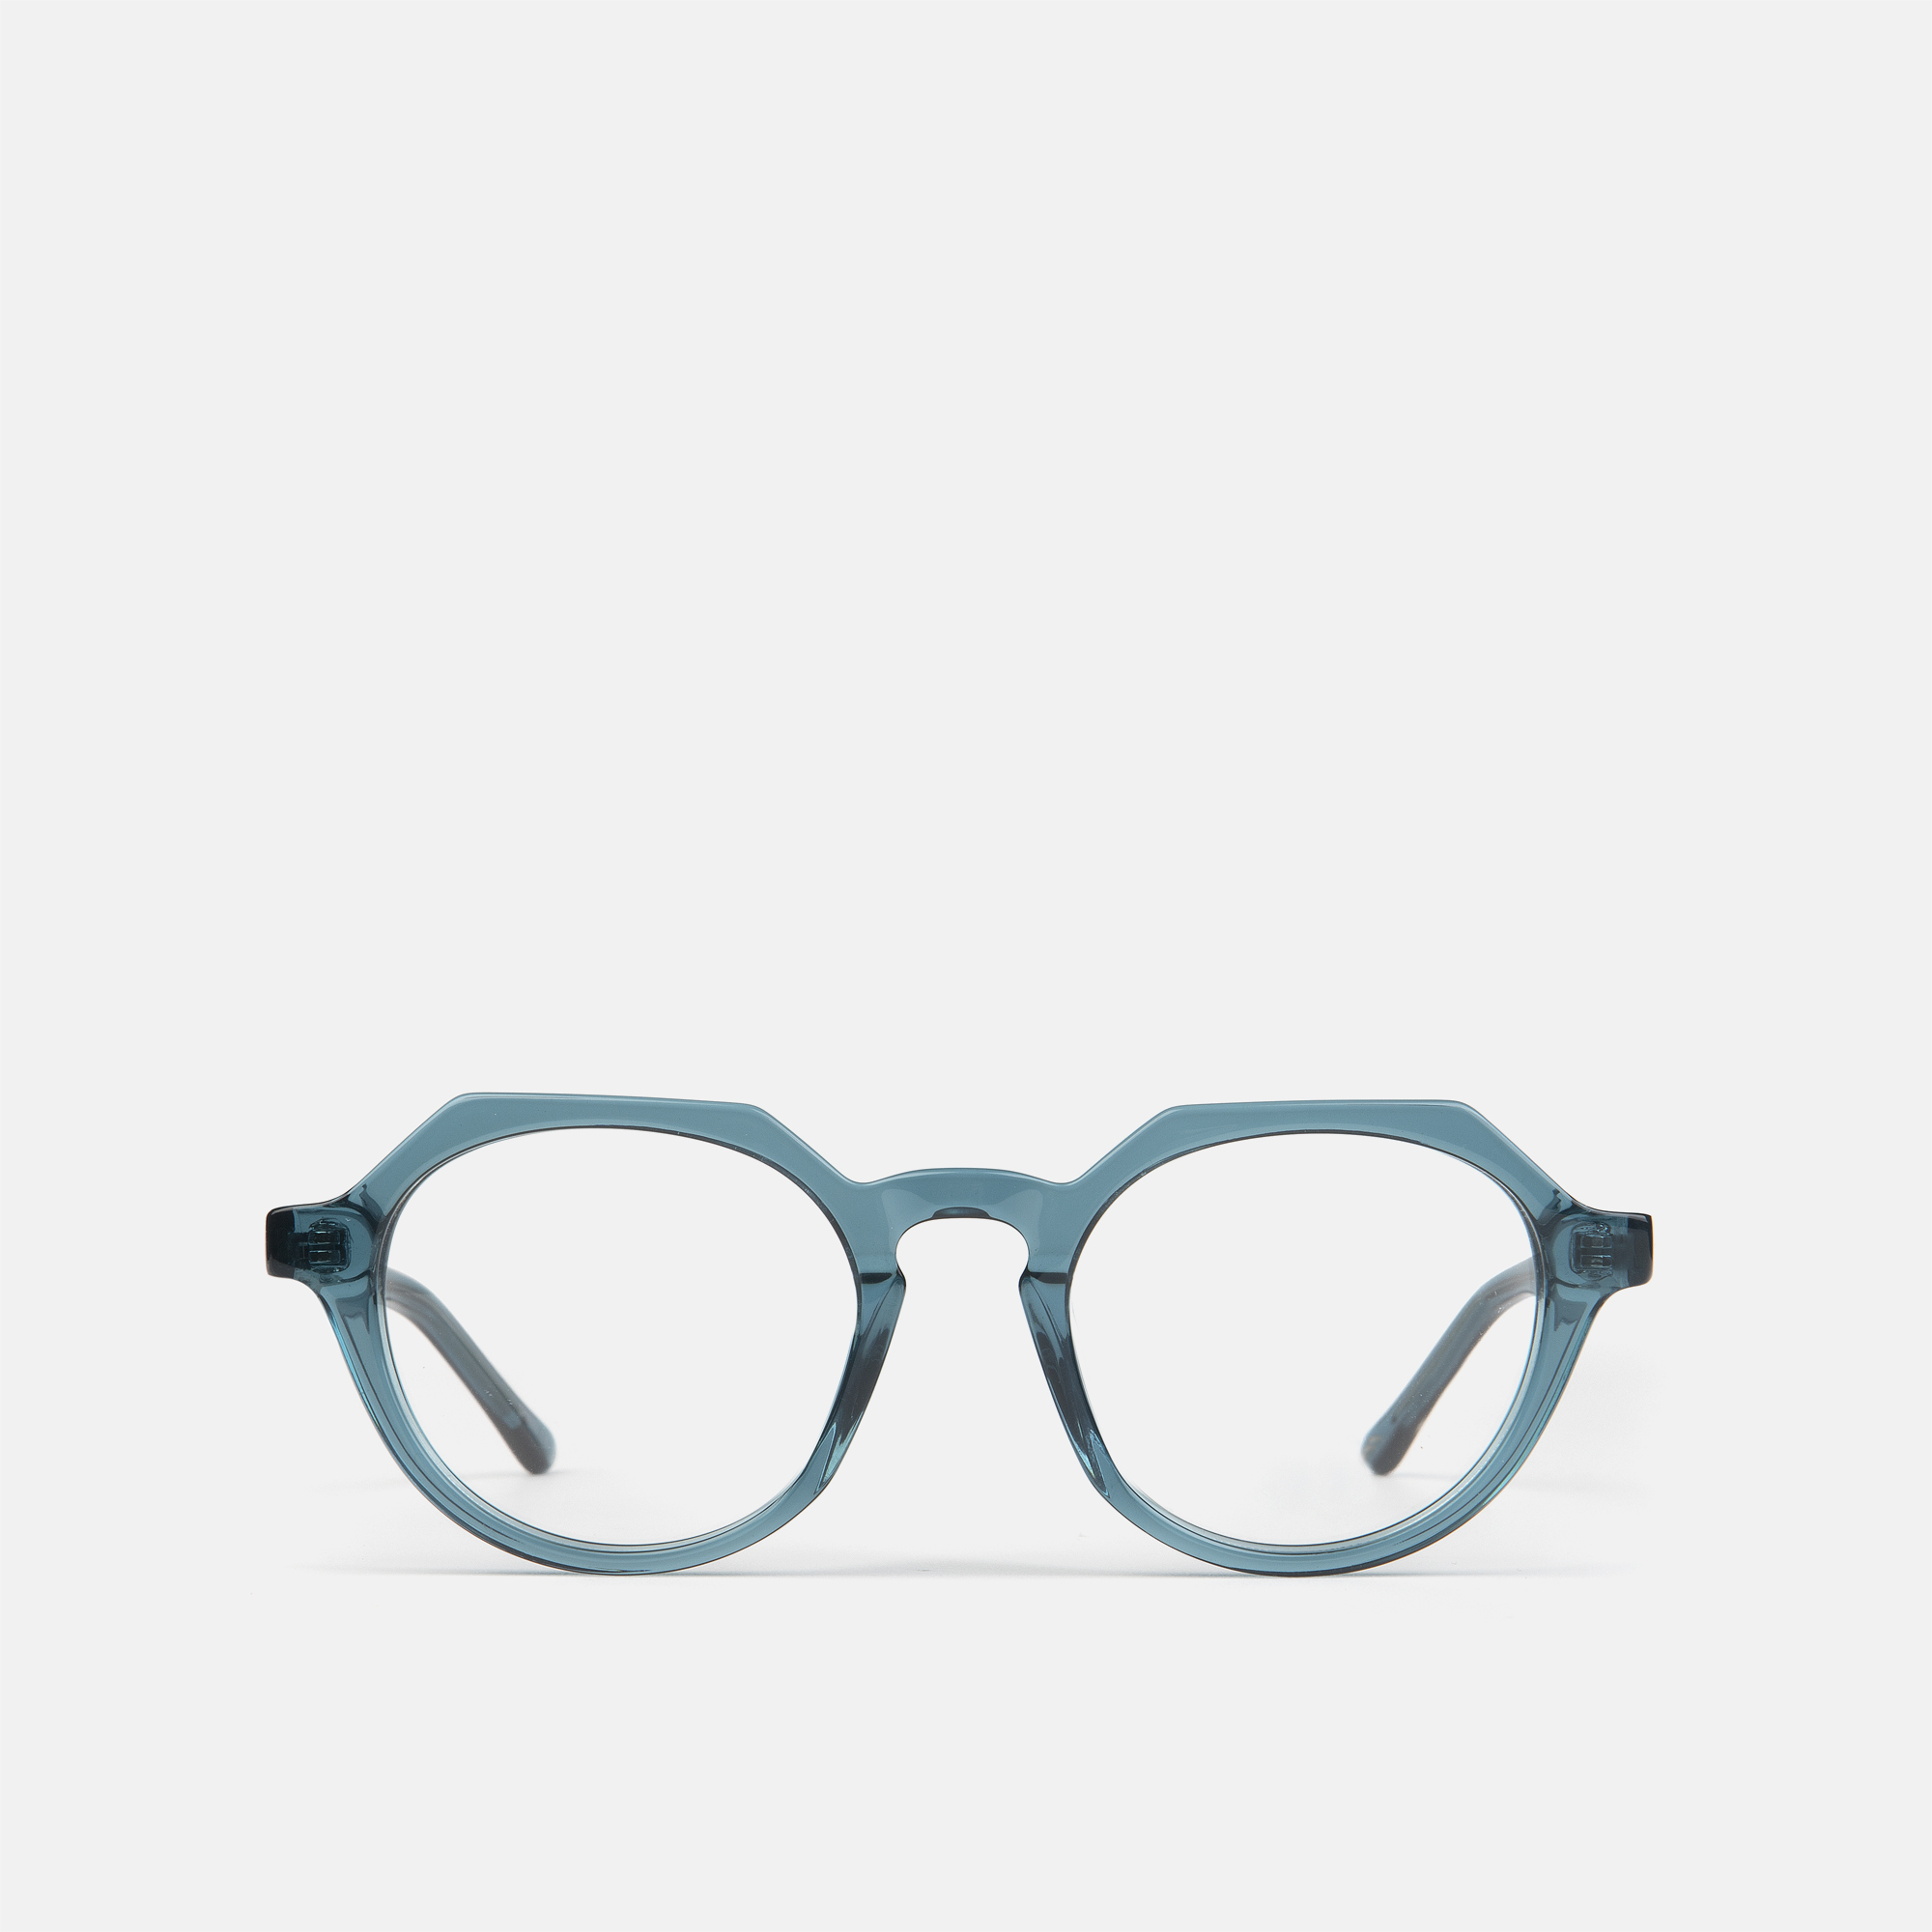 mó geek 59A B, blue/grey, hi-res